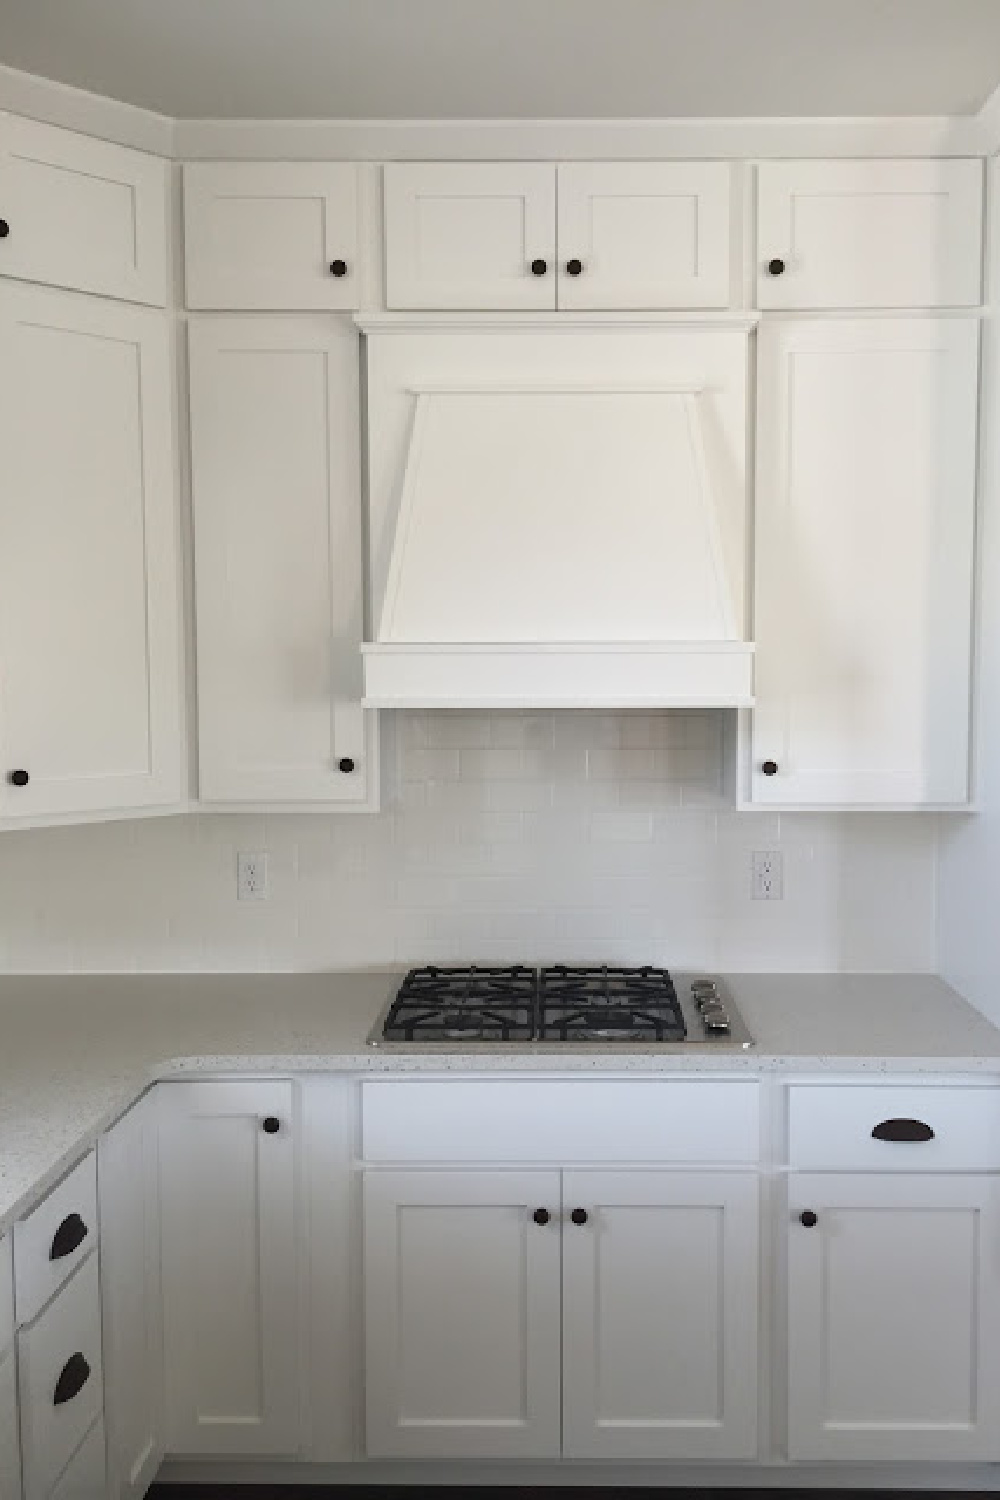 PPG Delicate White paint color on kitchen cabinets in a space with design by Andrea West. #paintcolors #ppgdelicatewhite #kitchencabinets